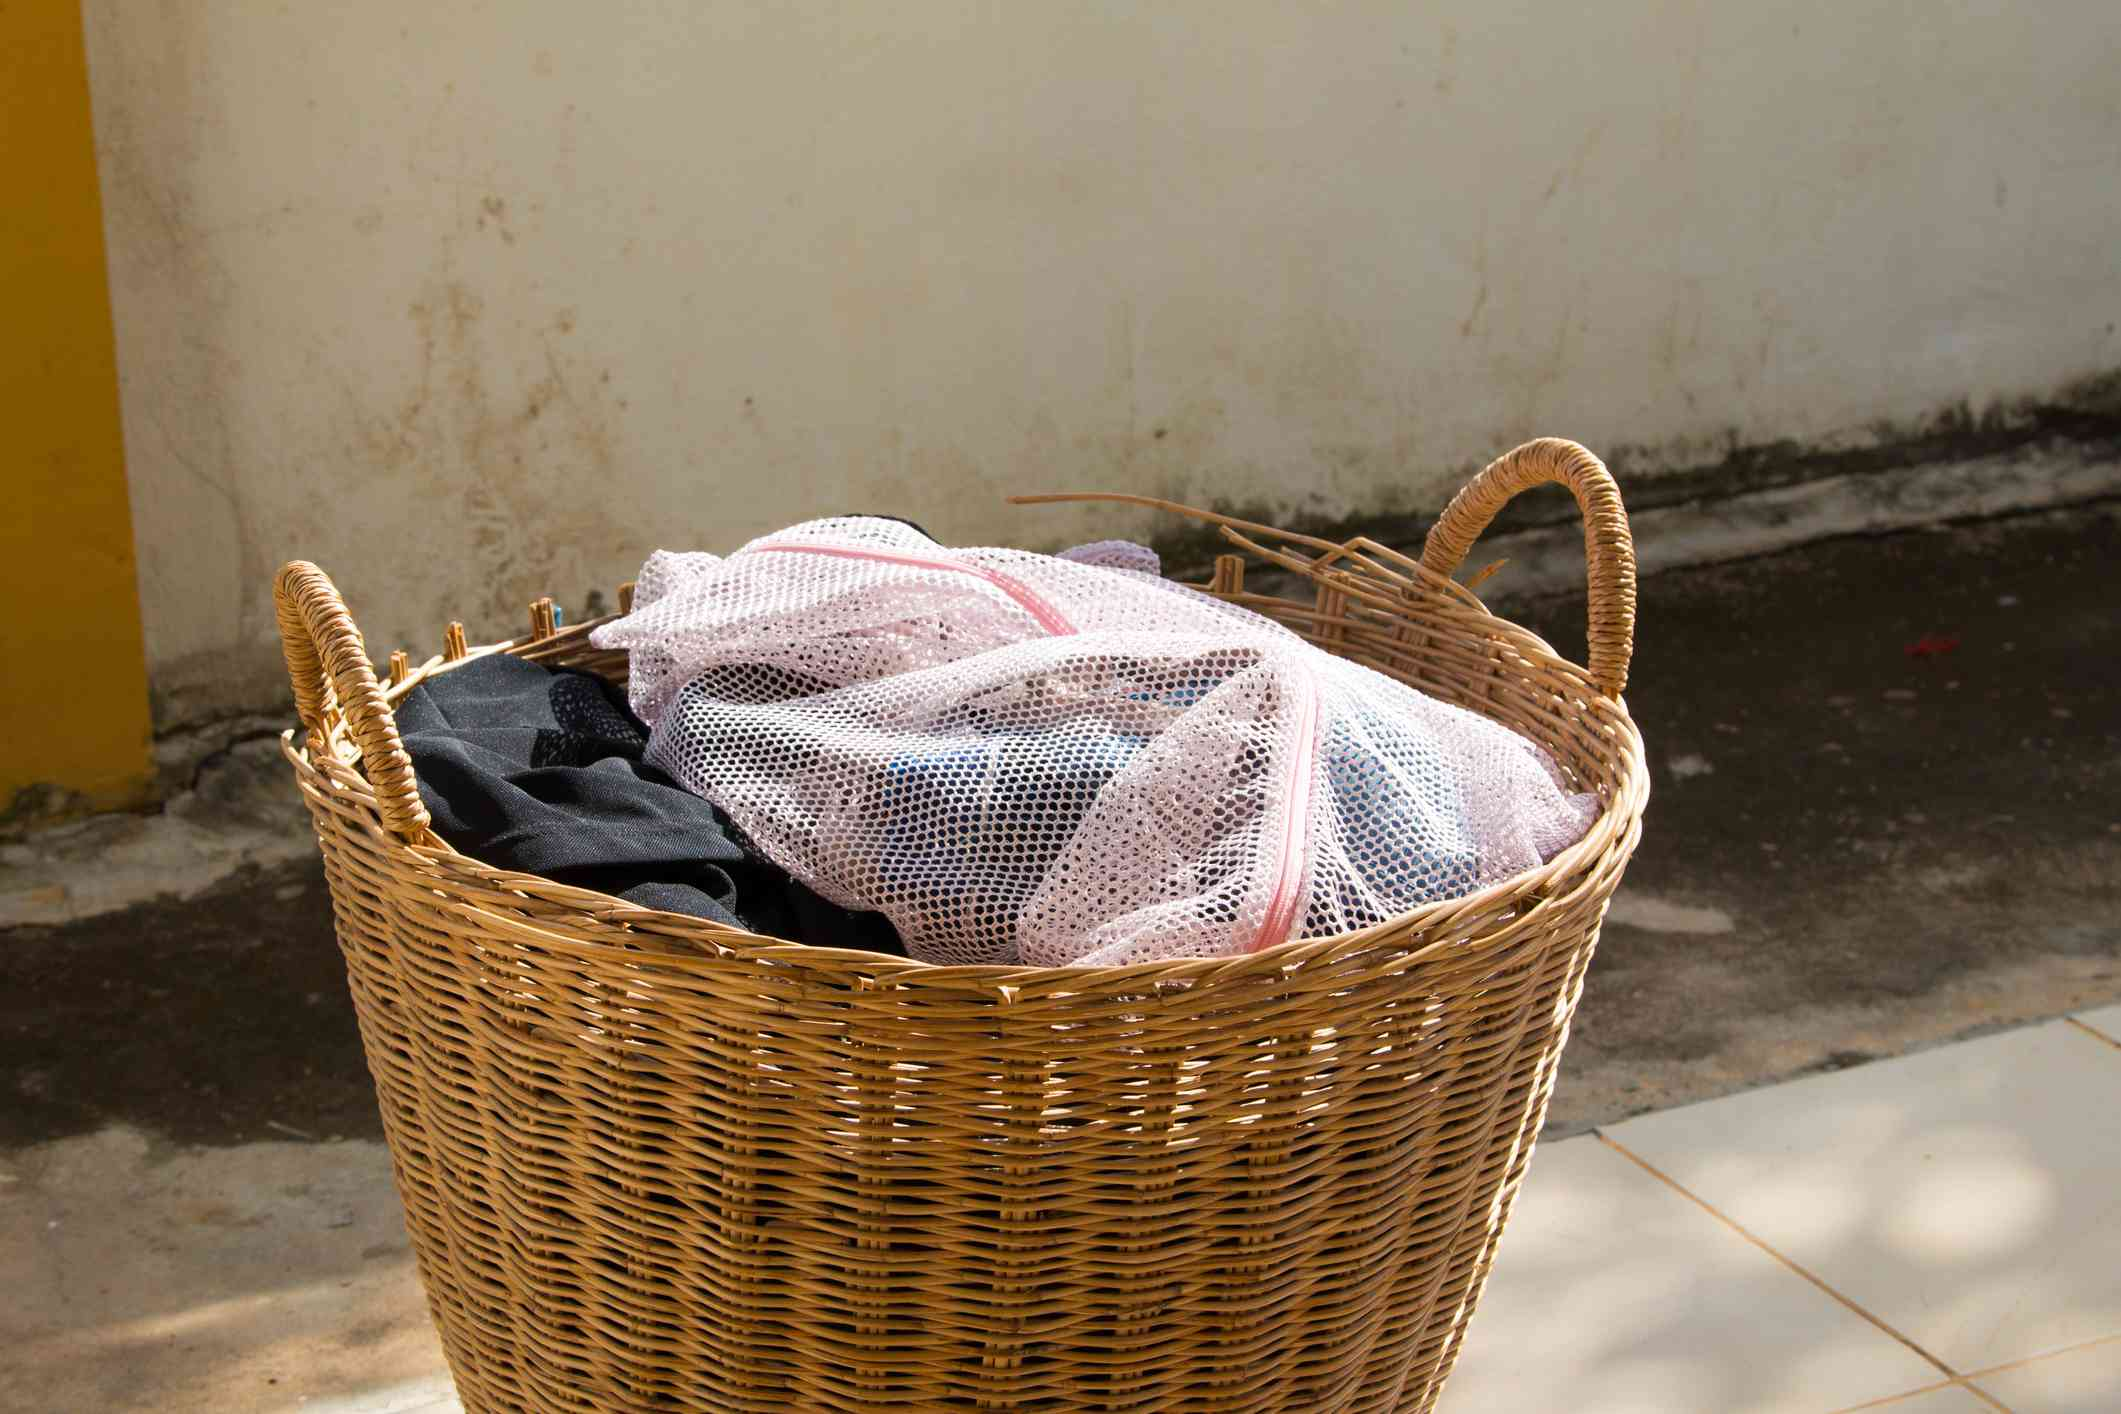 Clothes In Wicker Basket Outdoors